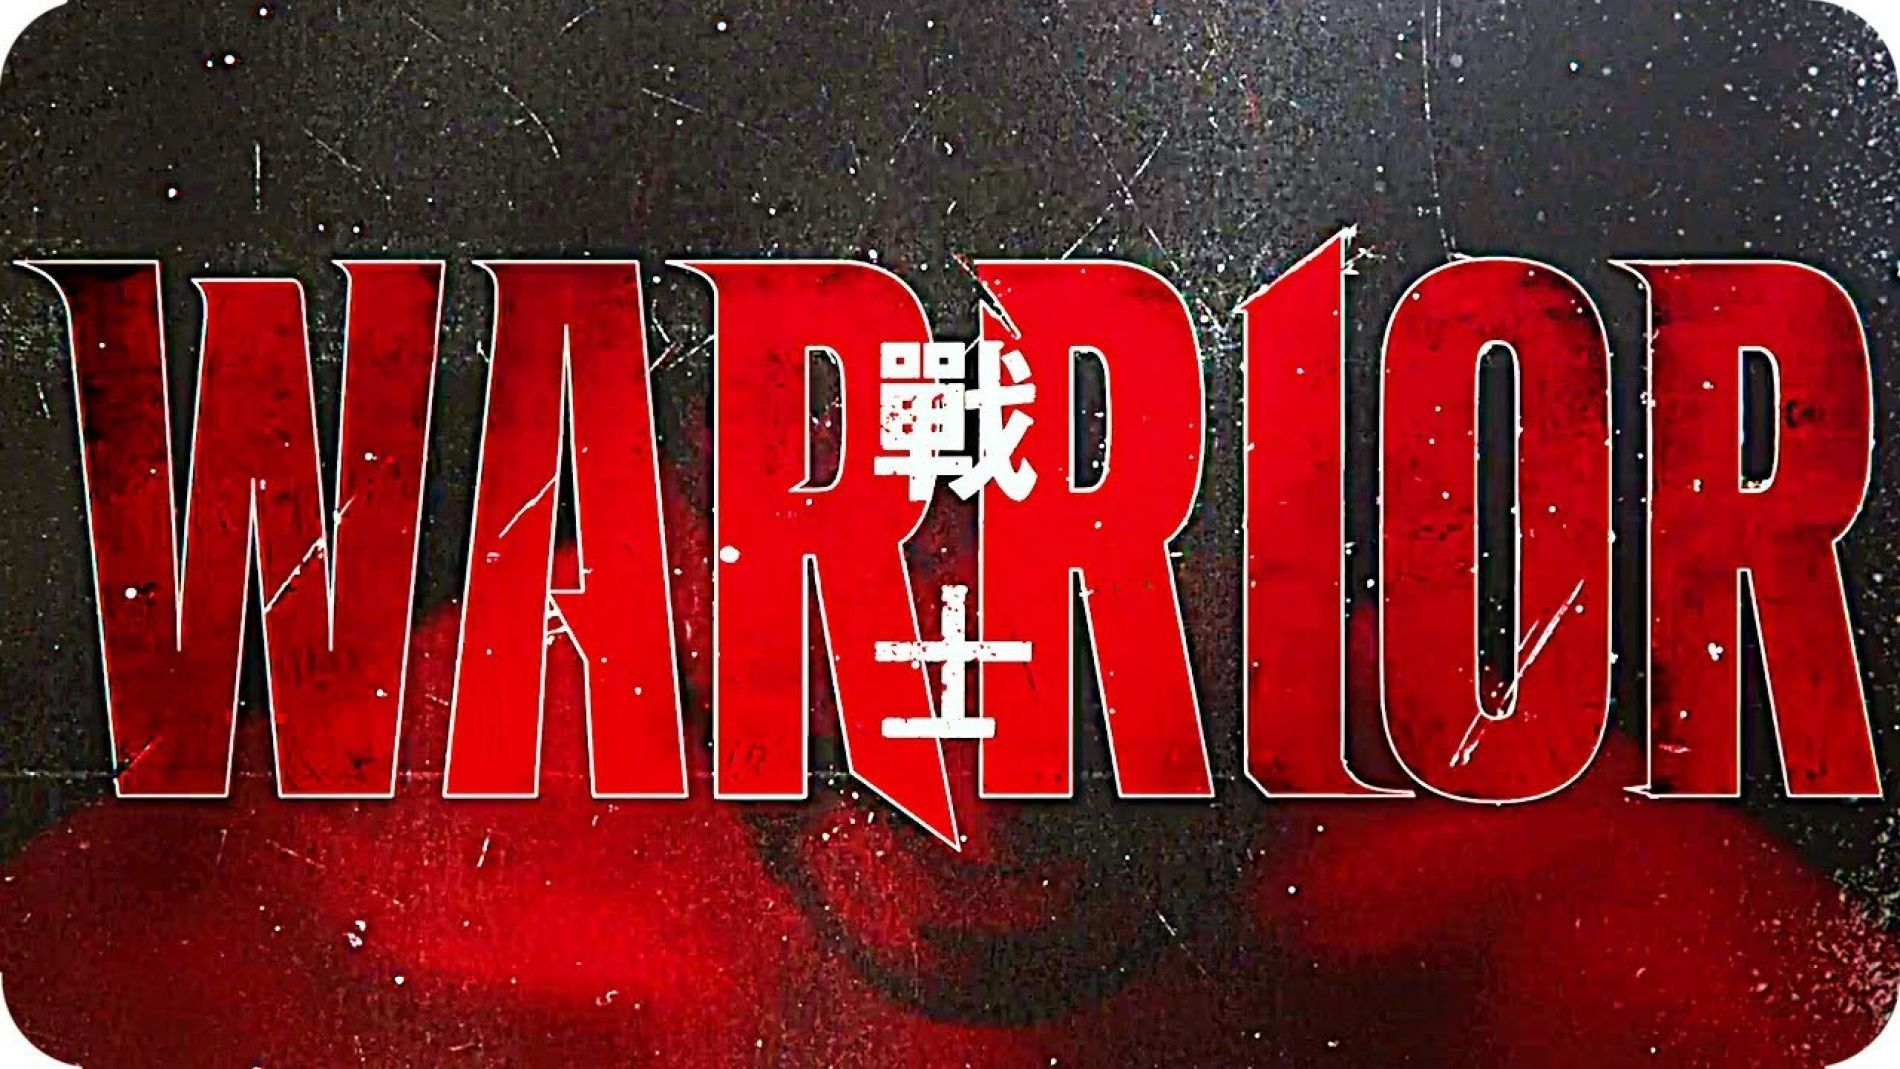 Another placement for Side and Chain in trailer of 'Warrior' (Custom)